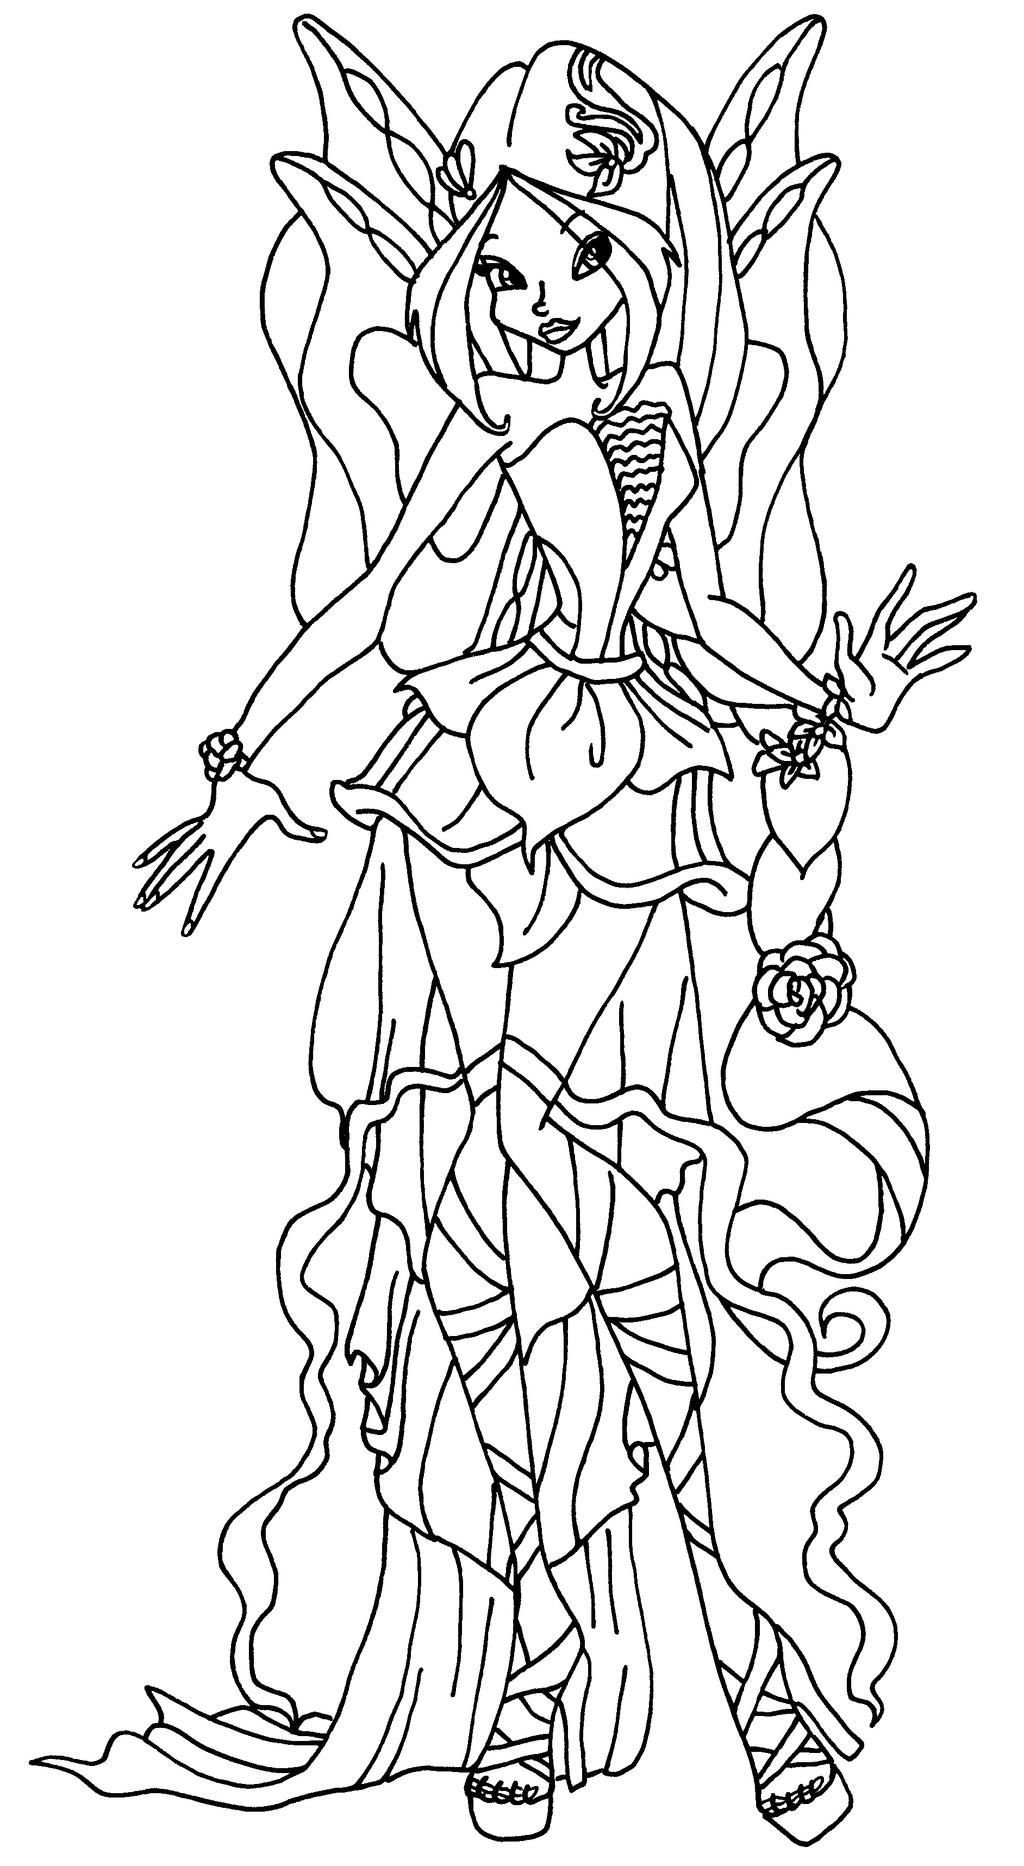 winx club coloring pages flora winx club flora coloring pages at getdrawings free download flora winx coloring club pages